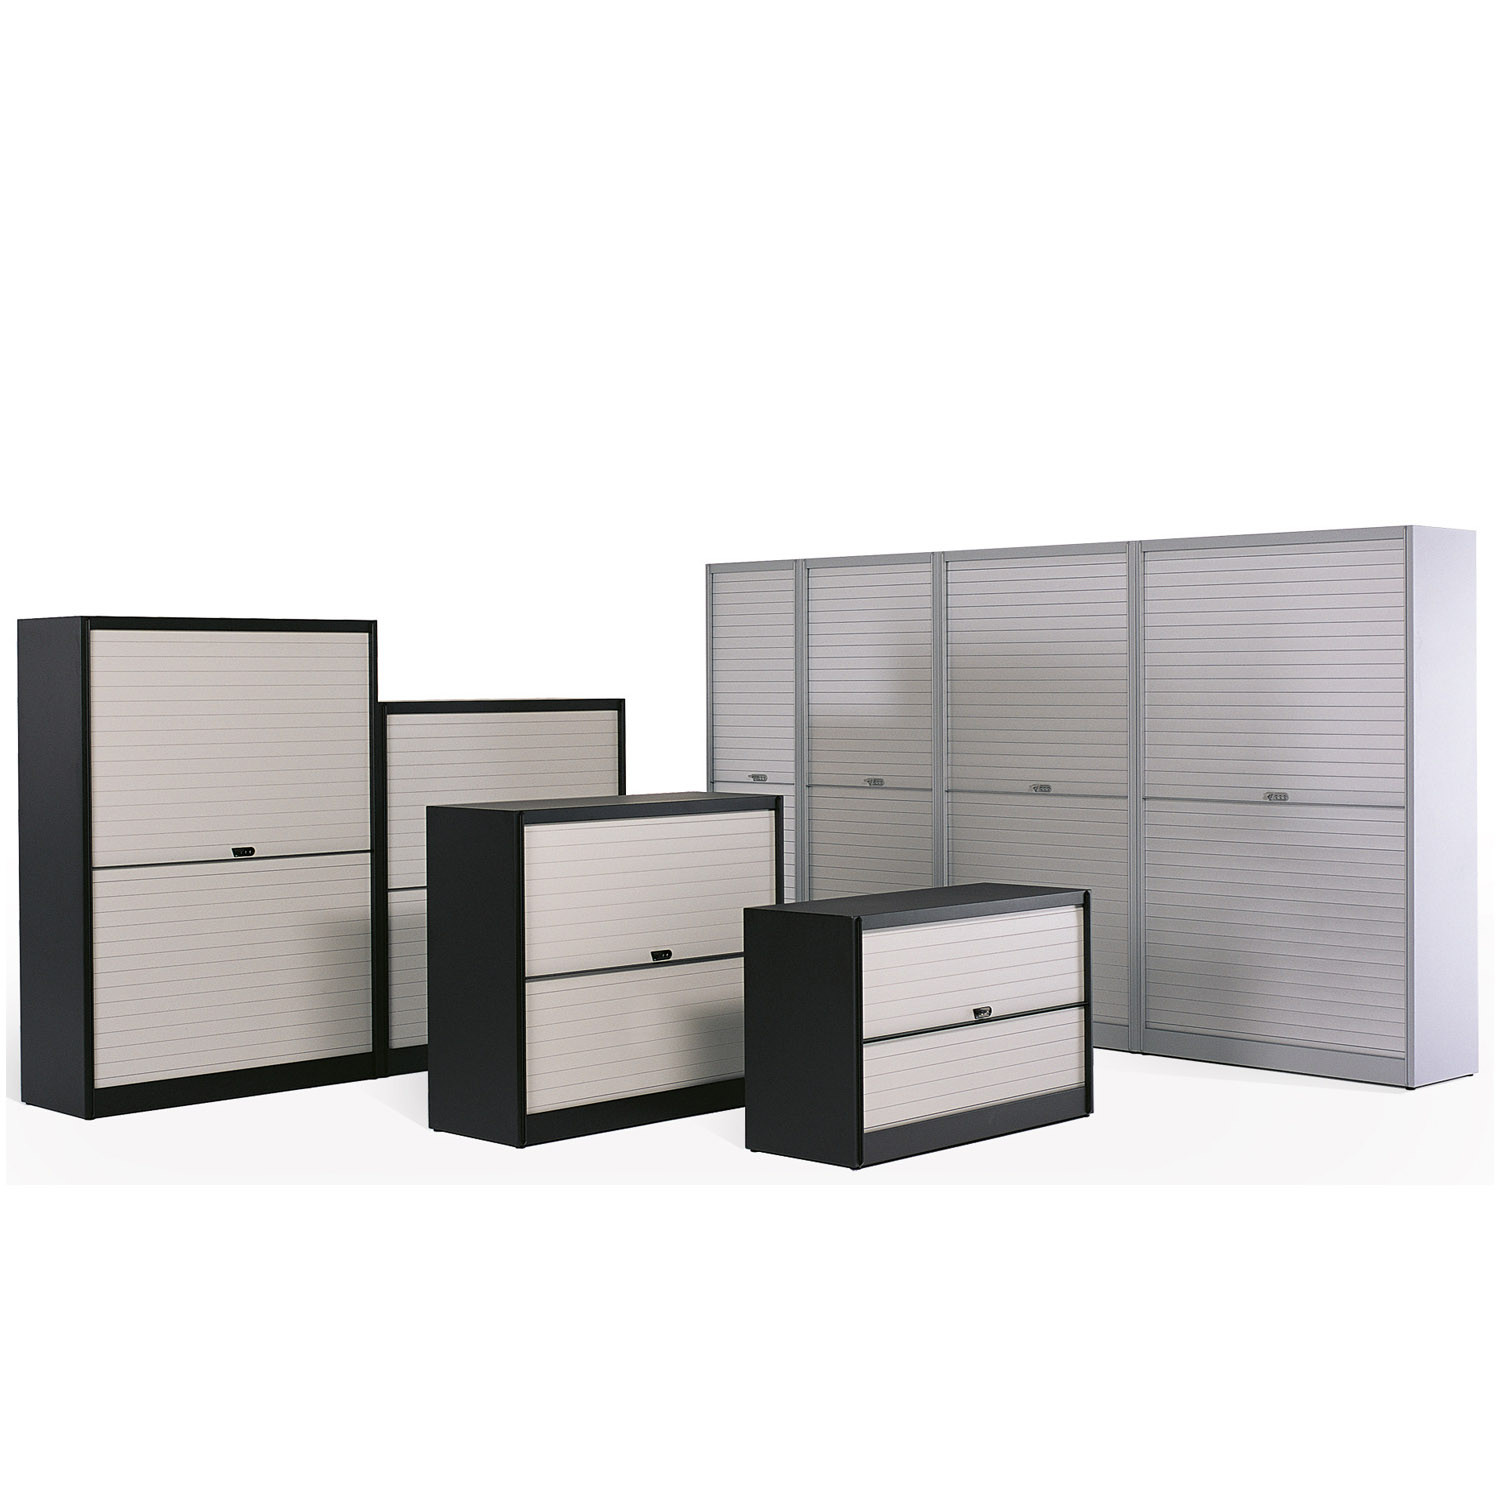 KRS Storage Cabinets